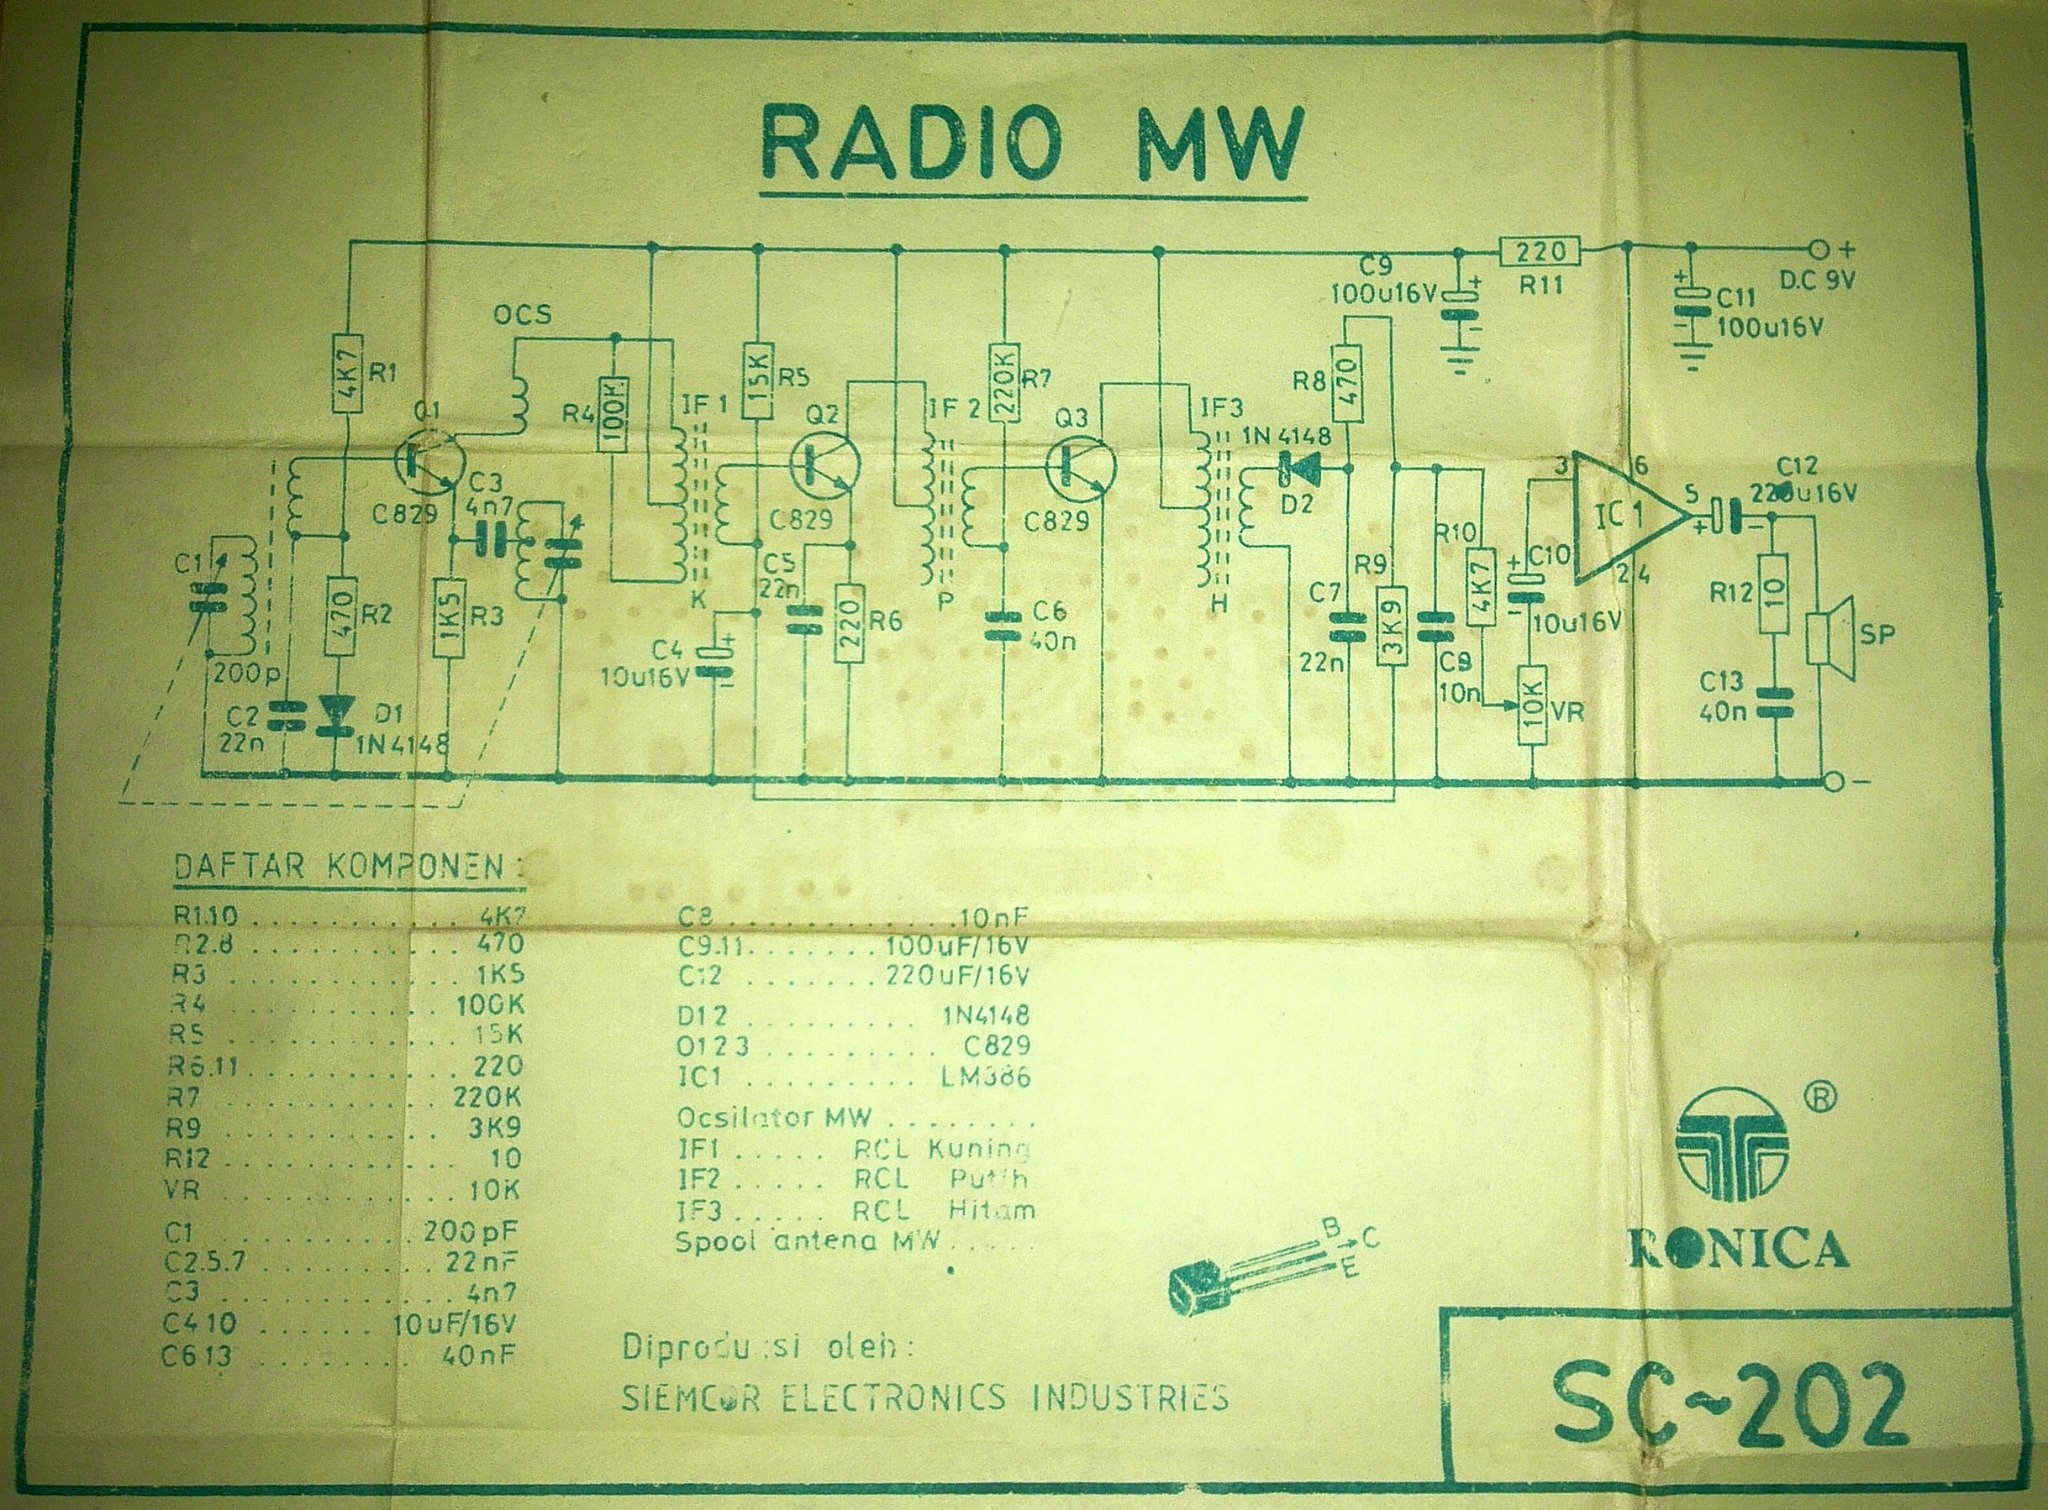 schea Qrp Transceiver Schematic on hf band mini, 40 meter cw,